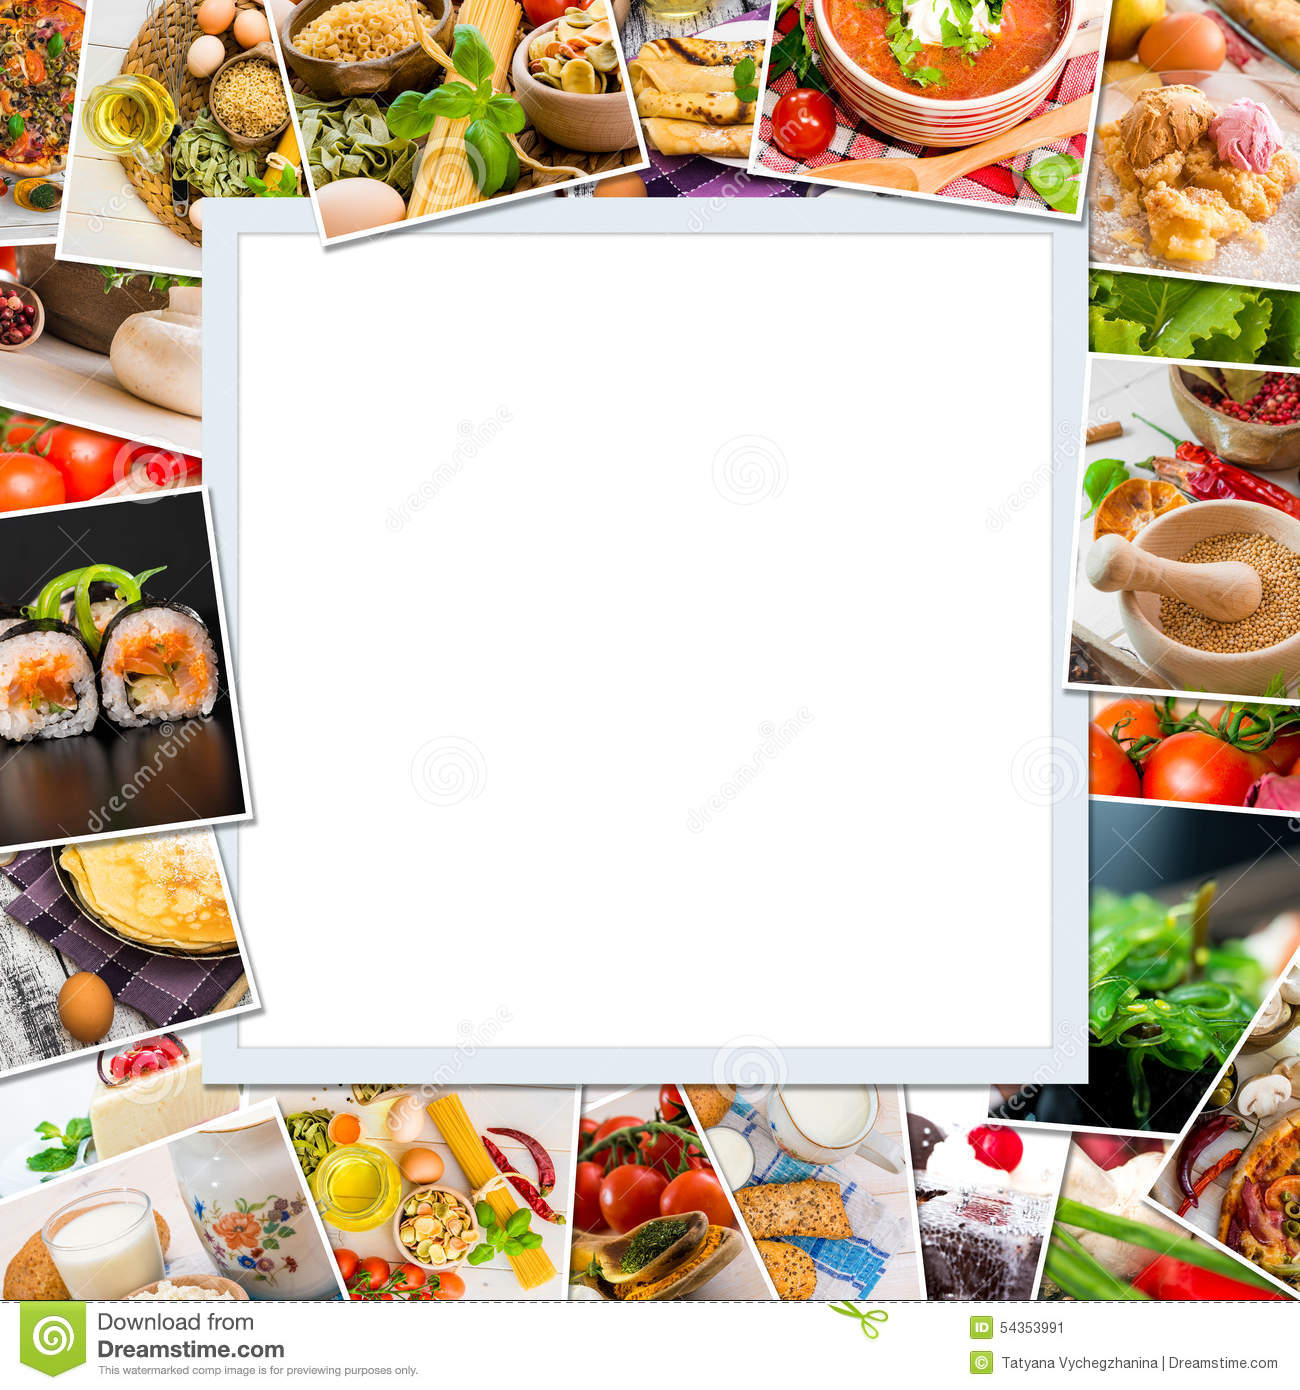 Frame photos of food stock image. Image of eggs, desert ...